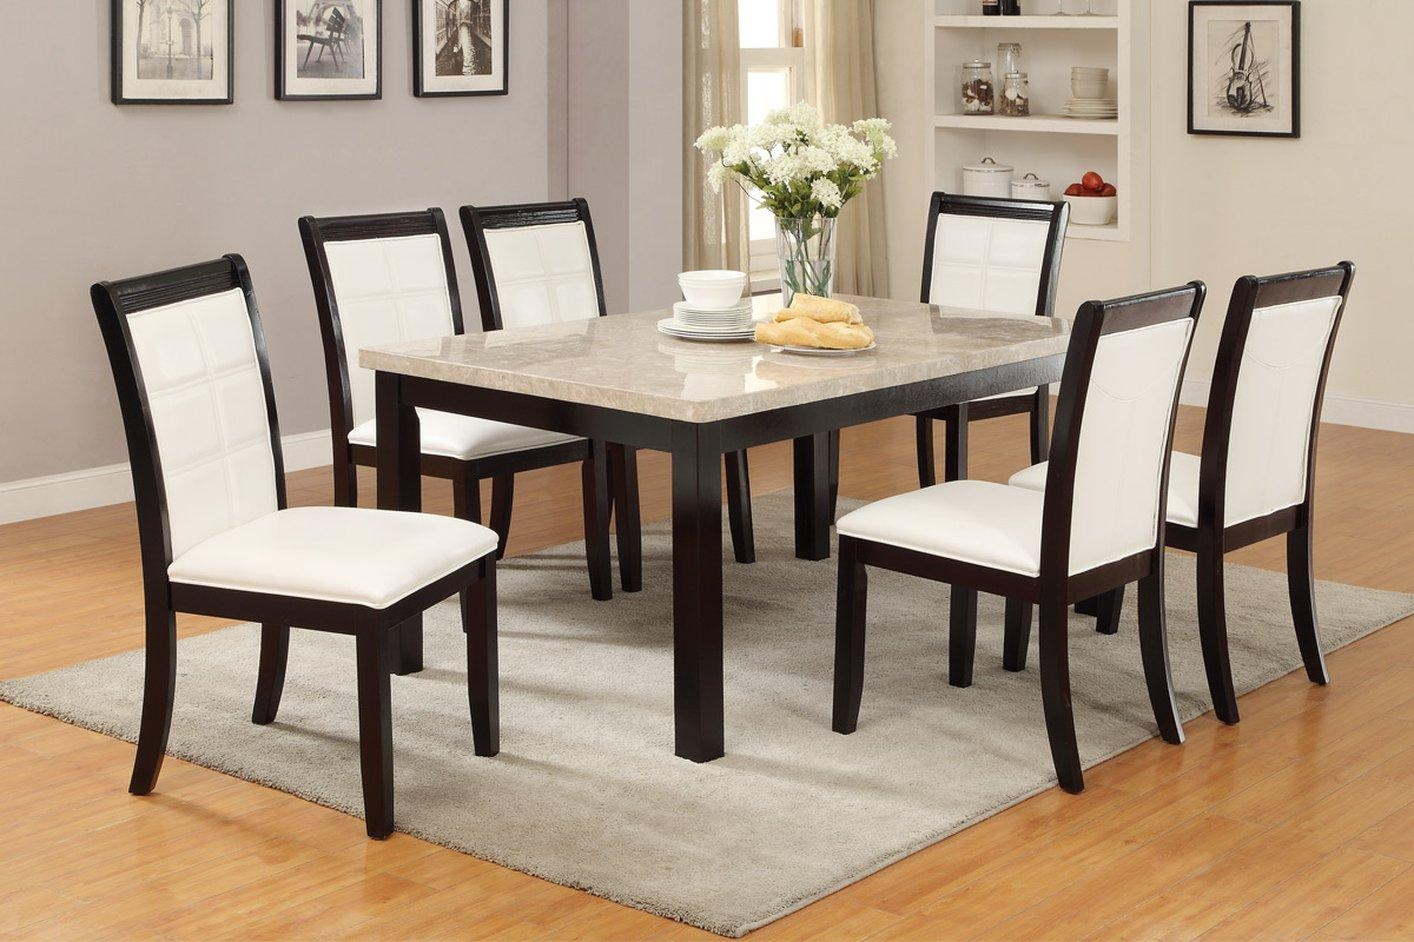 Brown Marble Dining Table – Steal A Sofa Furniture Outlet Los Inside Dining Table With Sofa Chairs (Image 8 of 20)